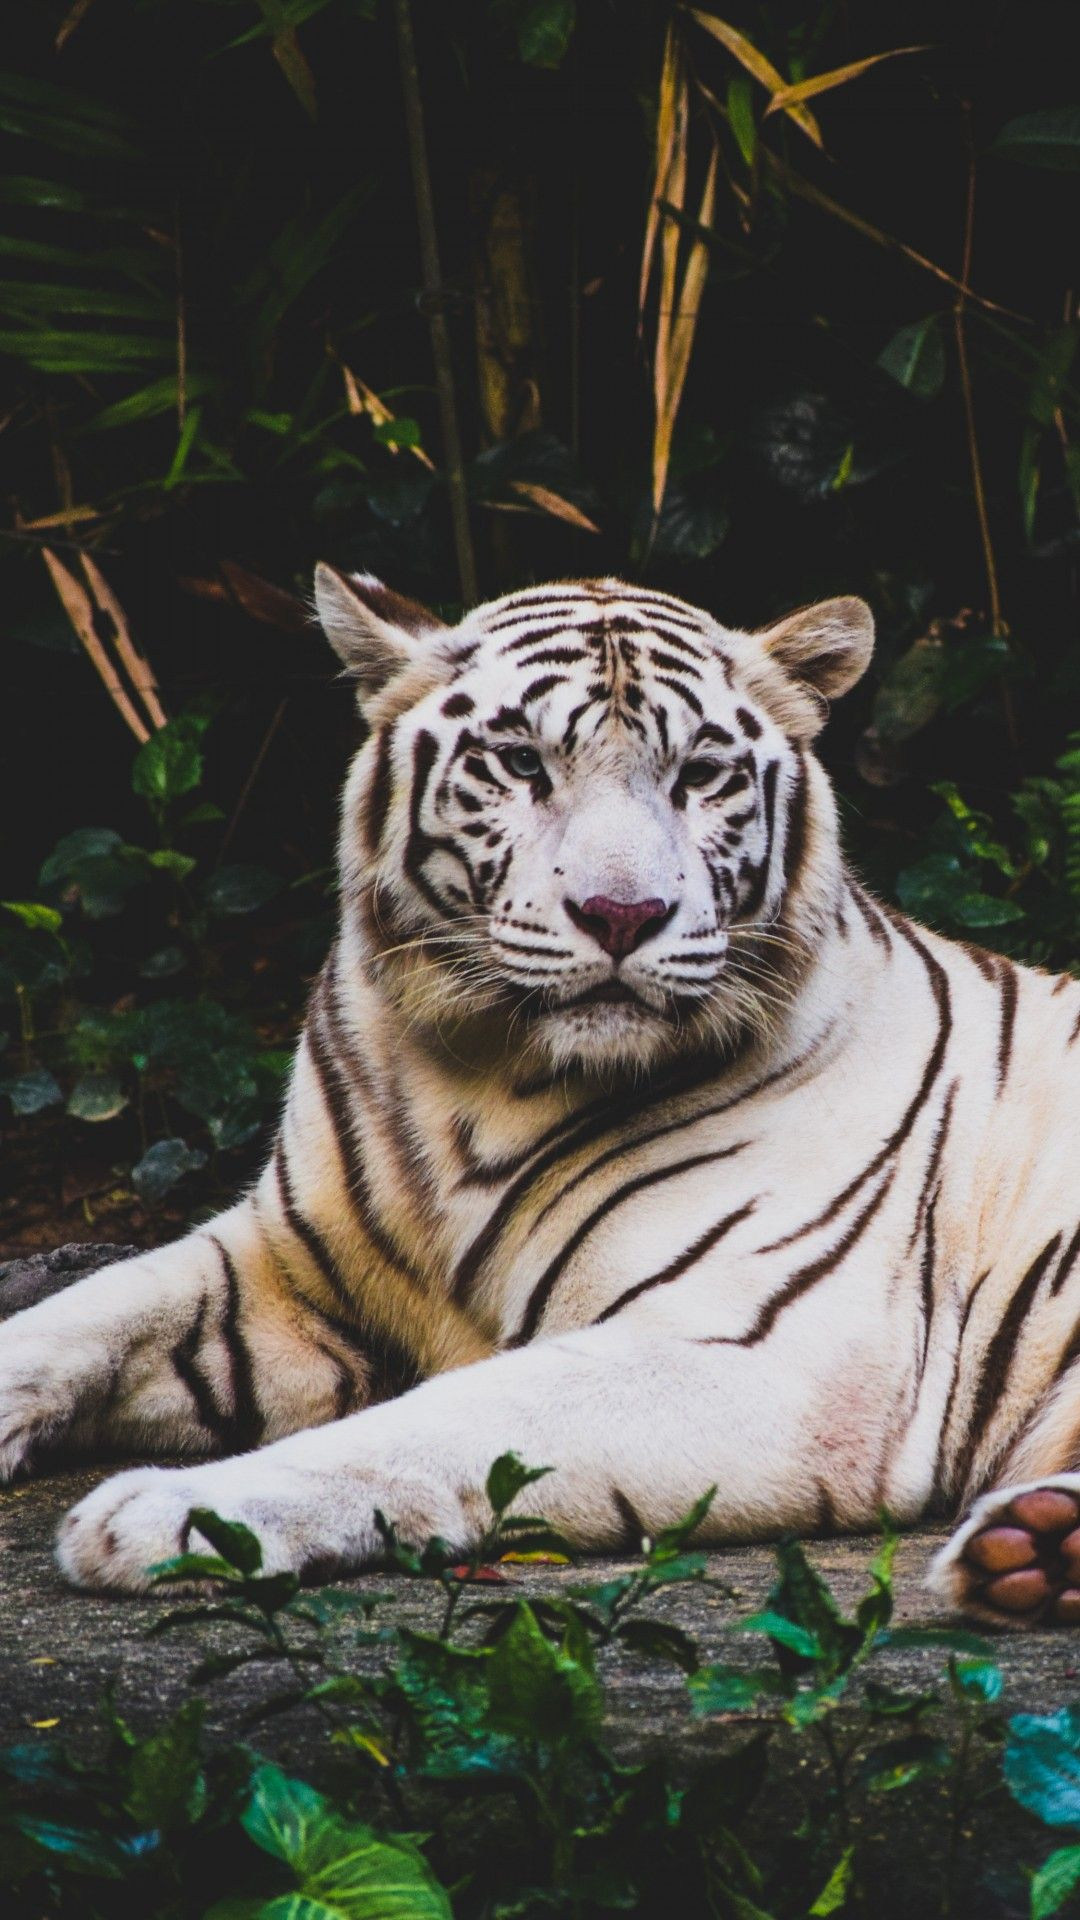 Black And White Tiger Wallpaper Iphone Tiger Wallpaper Iphone Tiger Wallpaper Animals